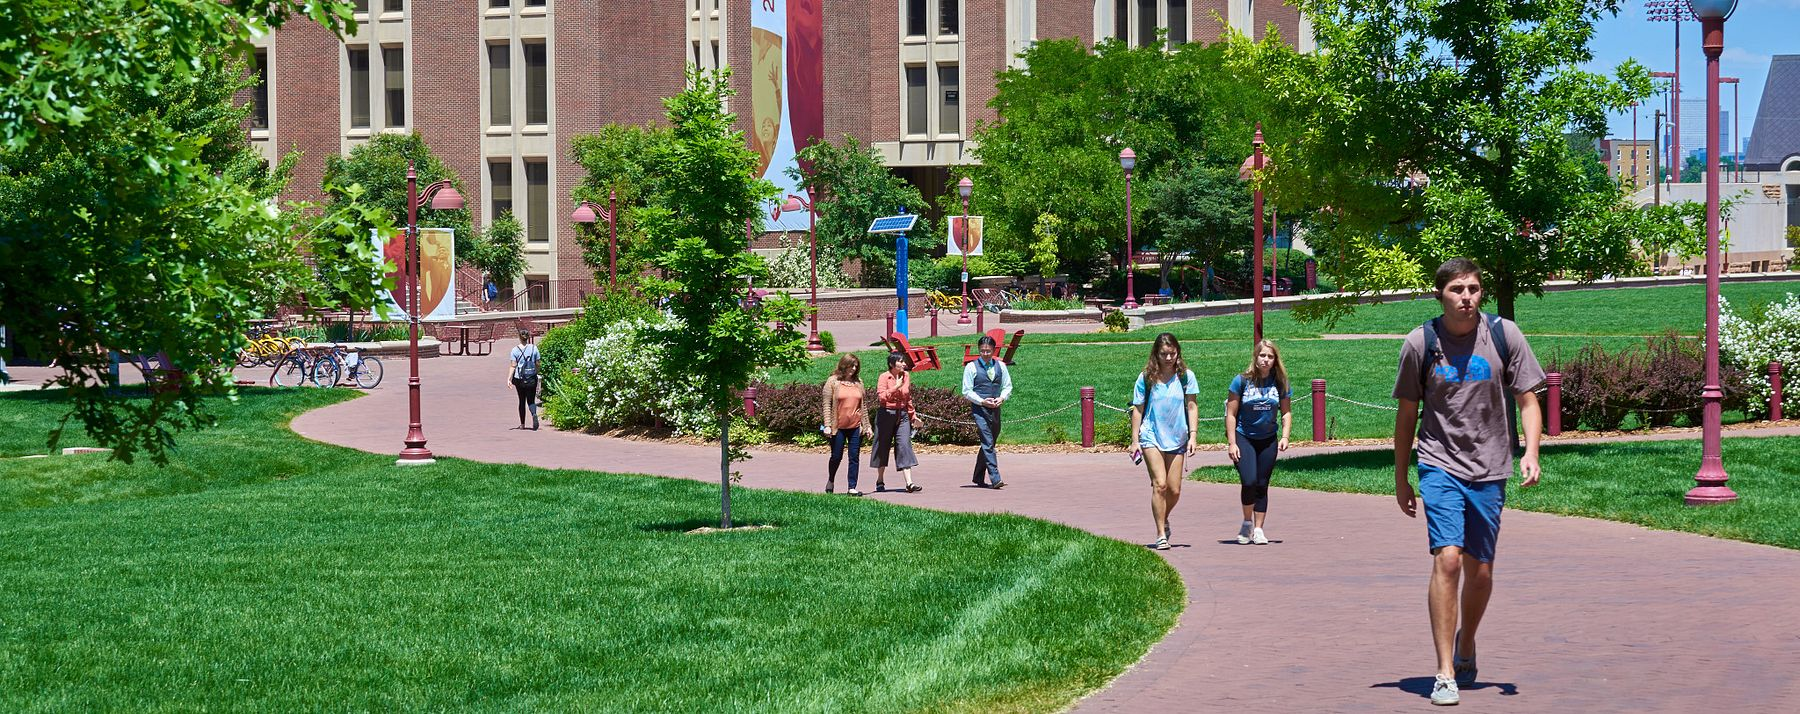 students walking on pathway in front of Sturm Hall